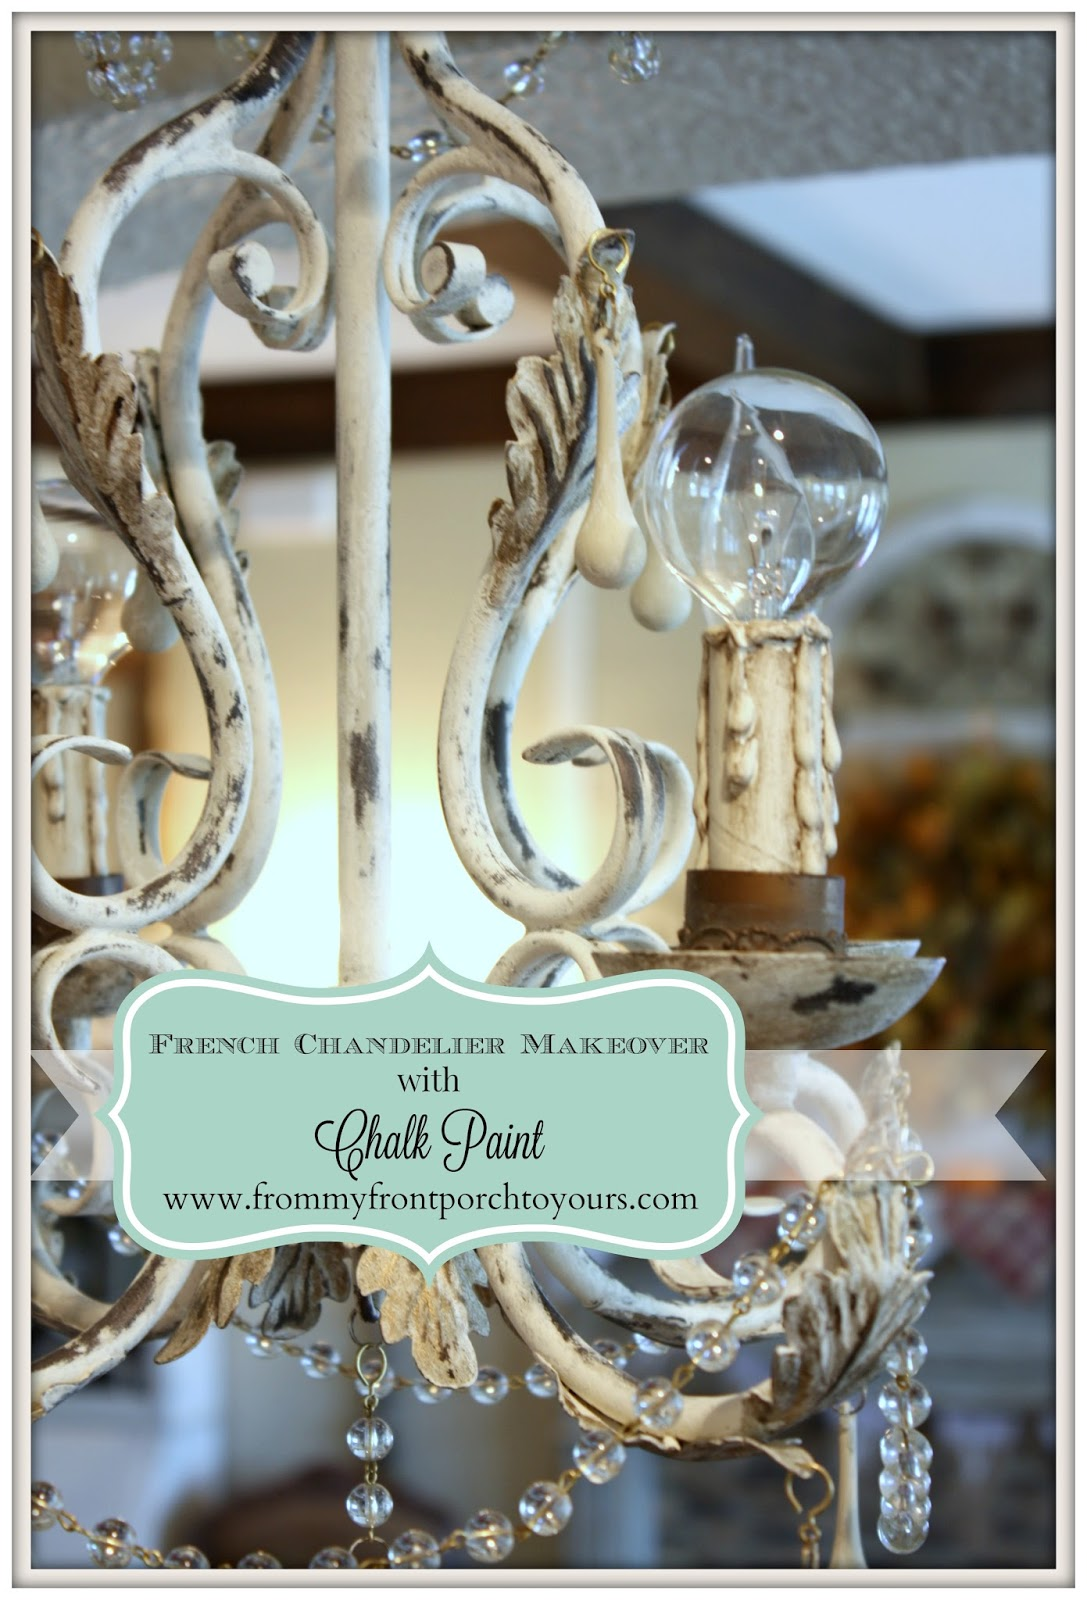 French Chandelier Makeover